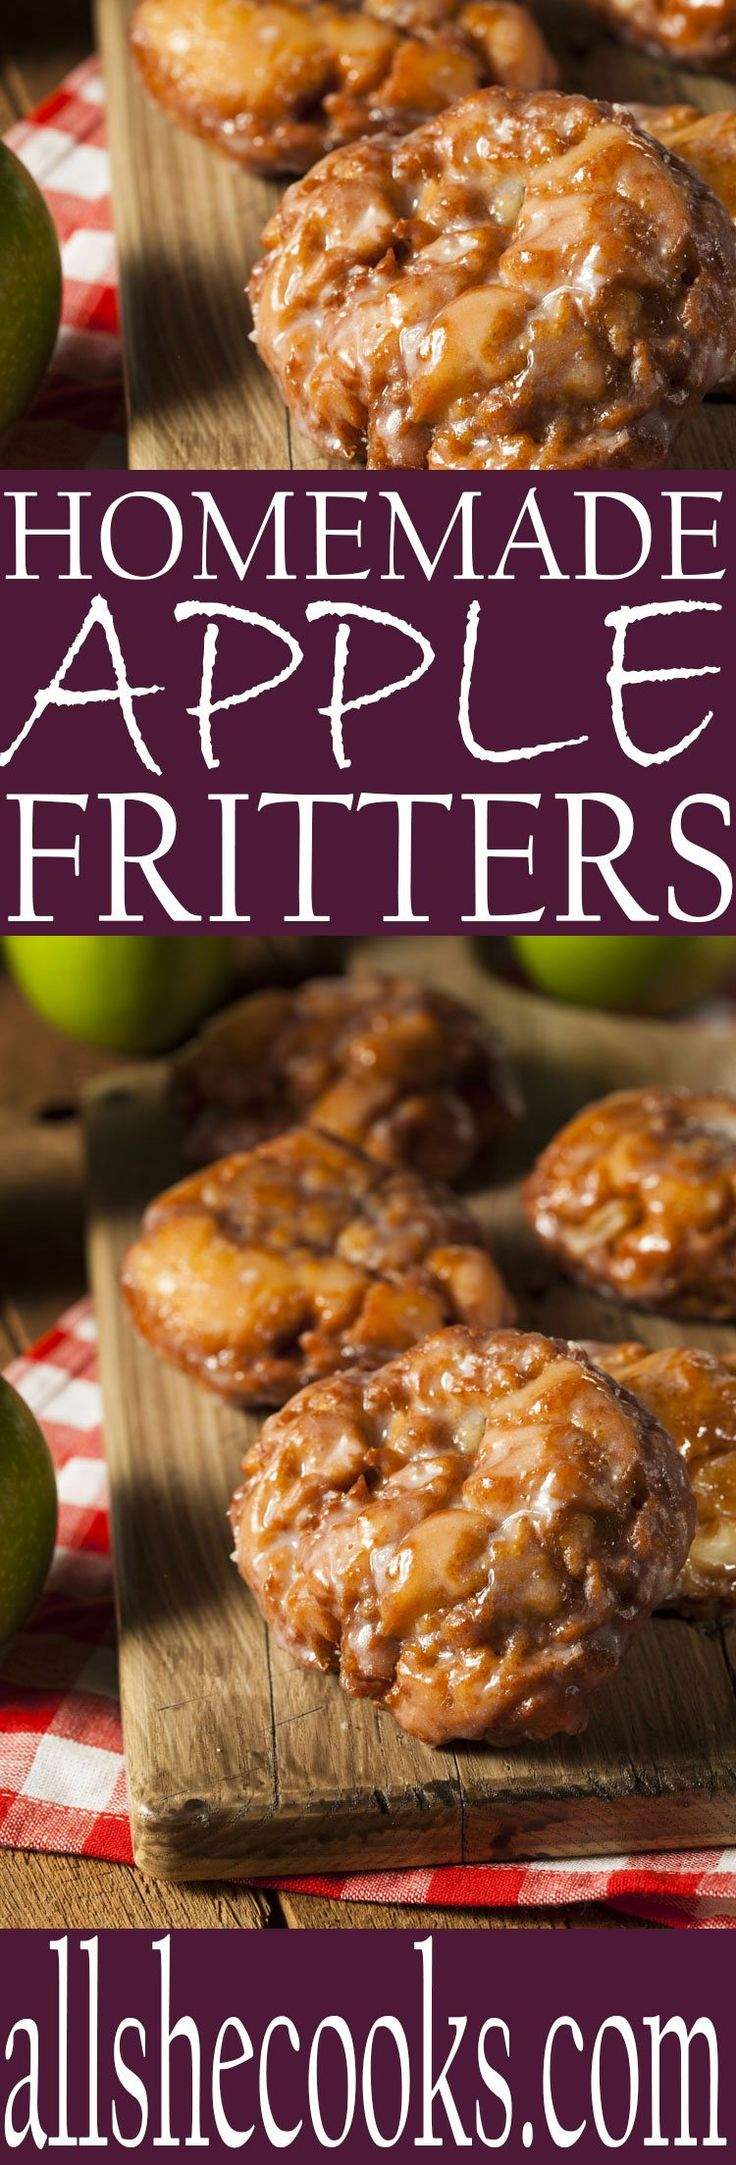 Enjoy homemade apple fritters for a sweet breakfast. These fried fritters are easy to make and delicious to eat. Make them for a special treat.